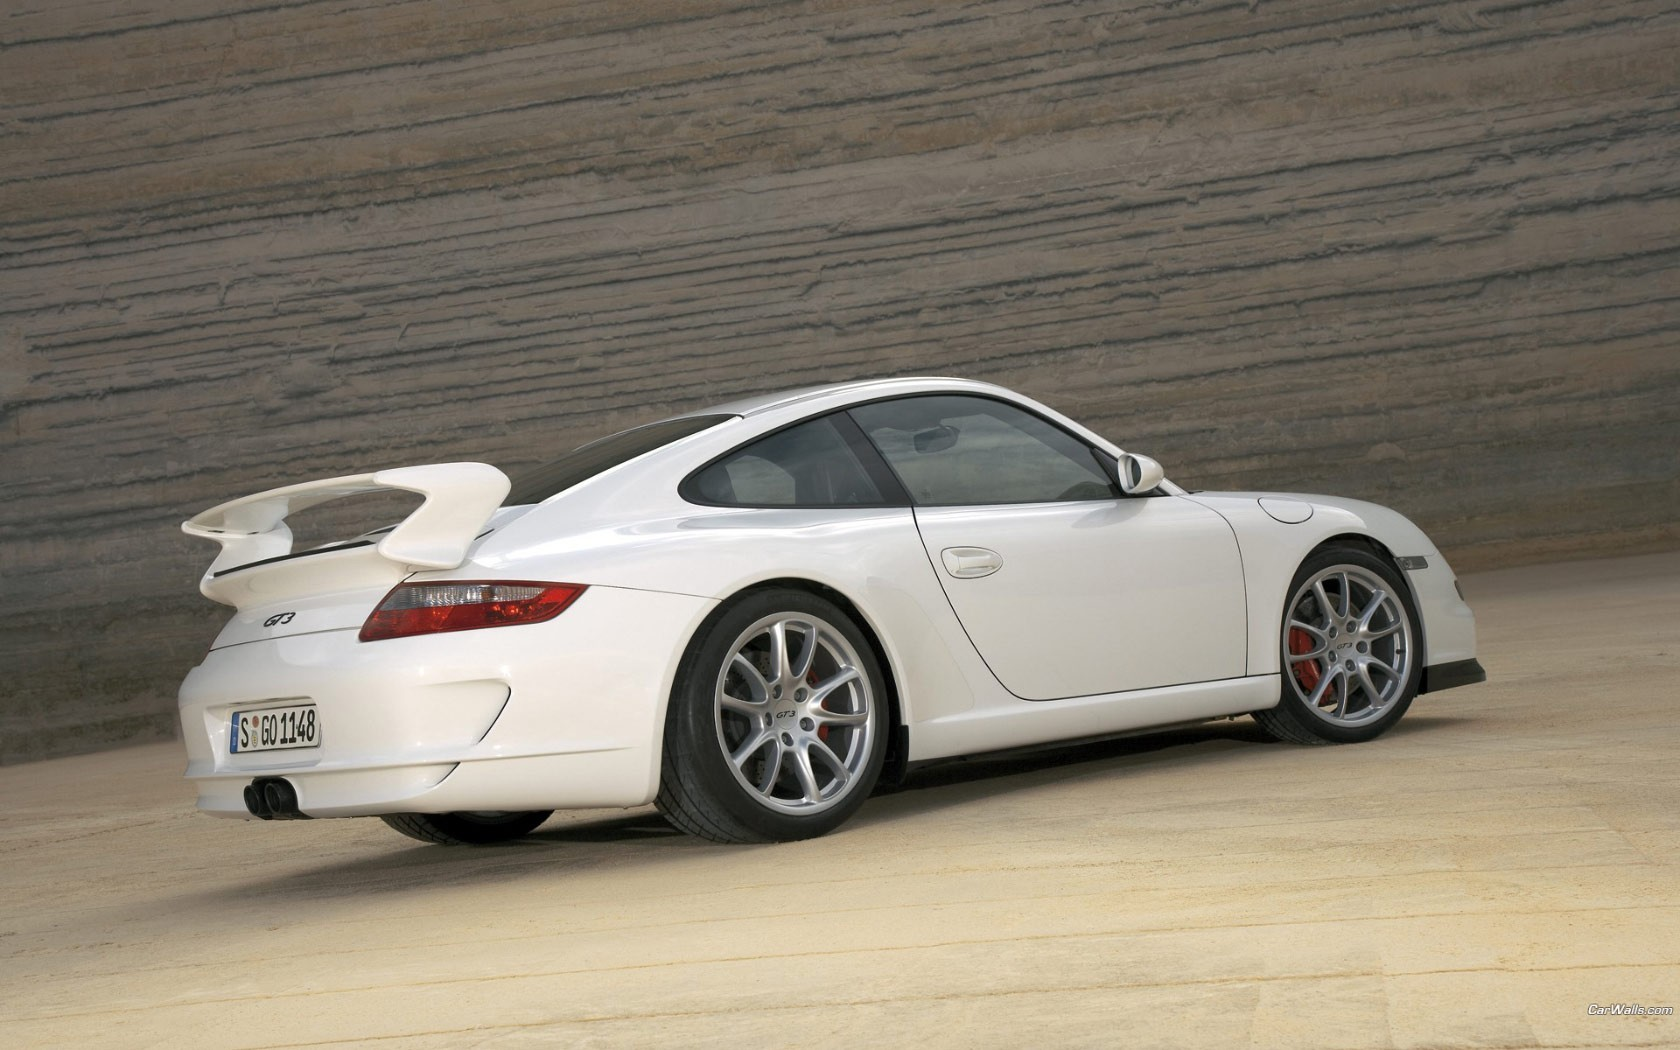 cars Porsche HD Wallpaper